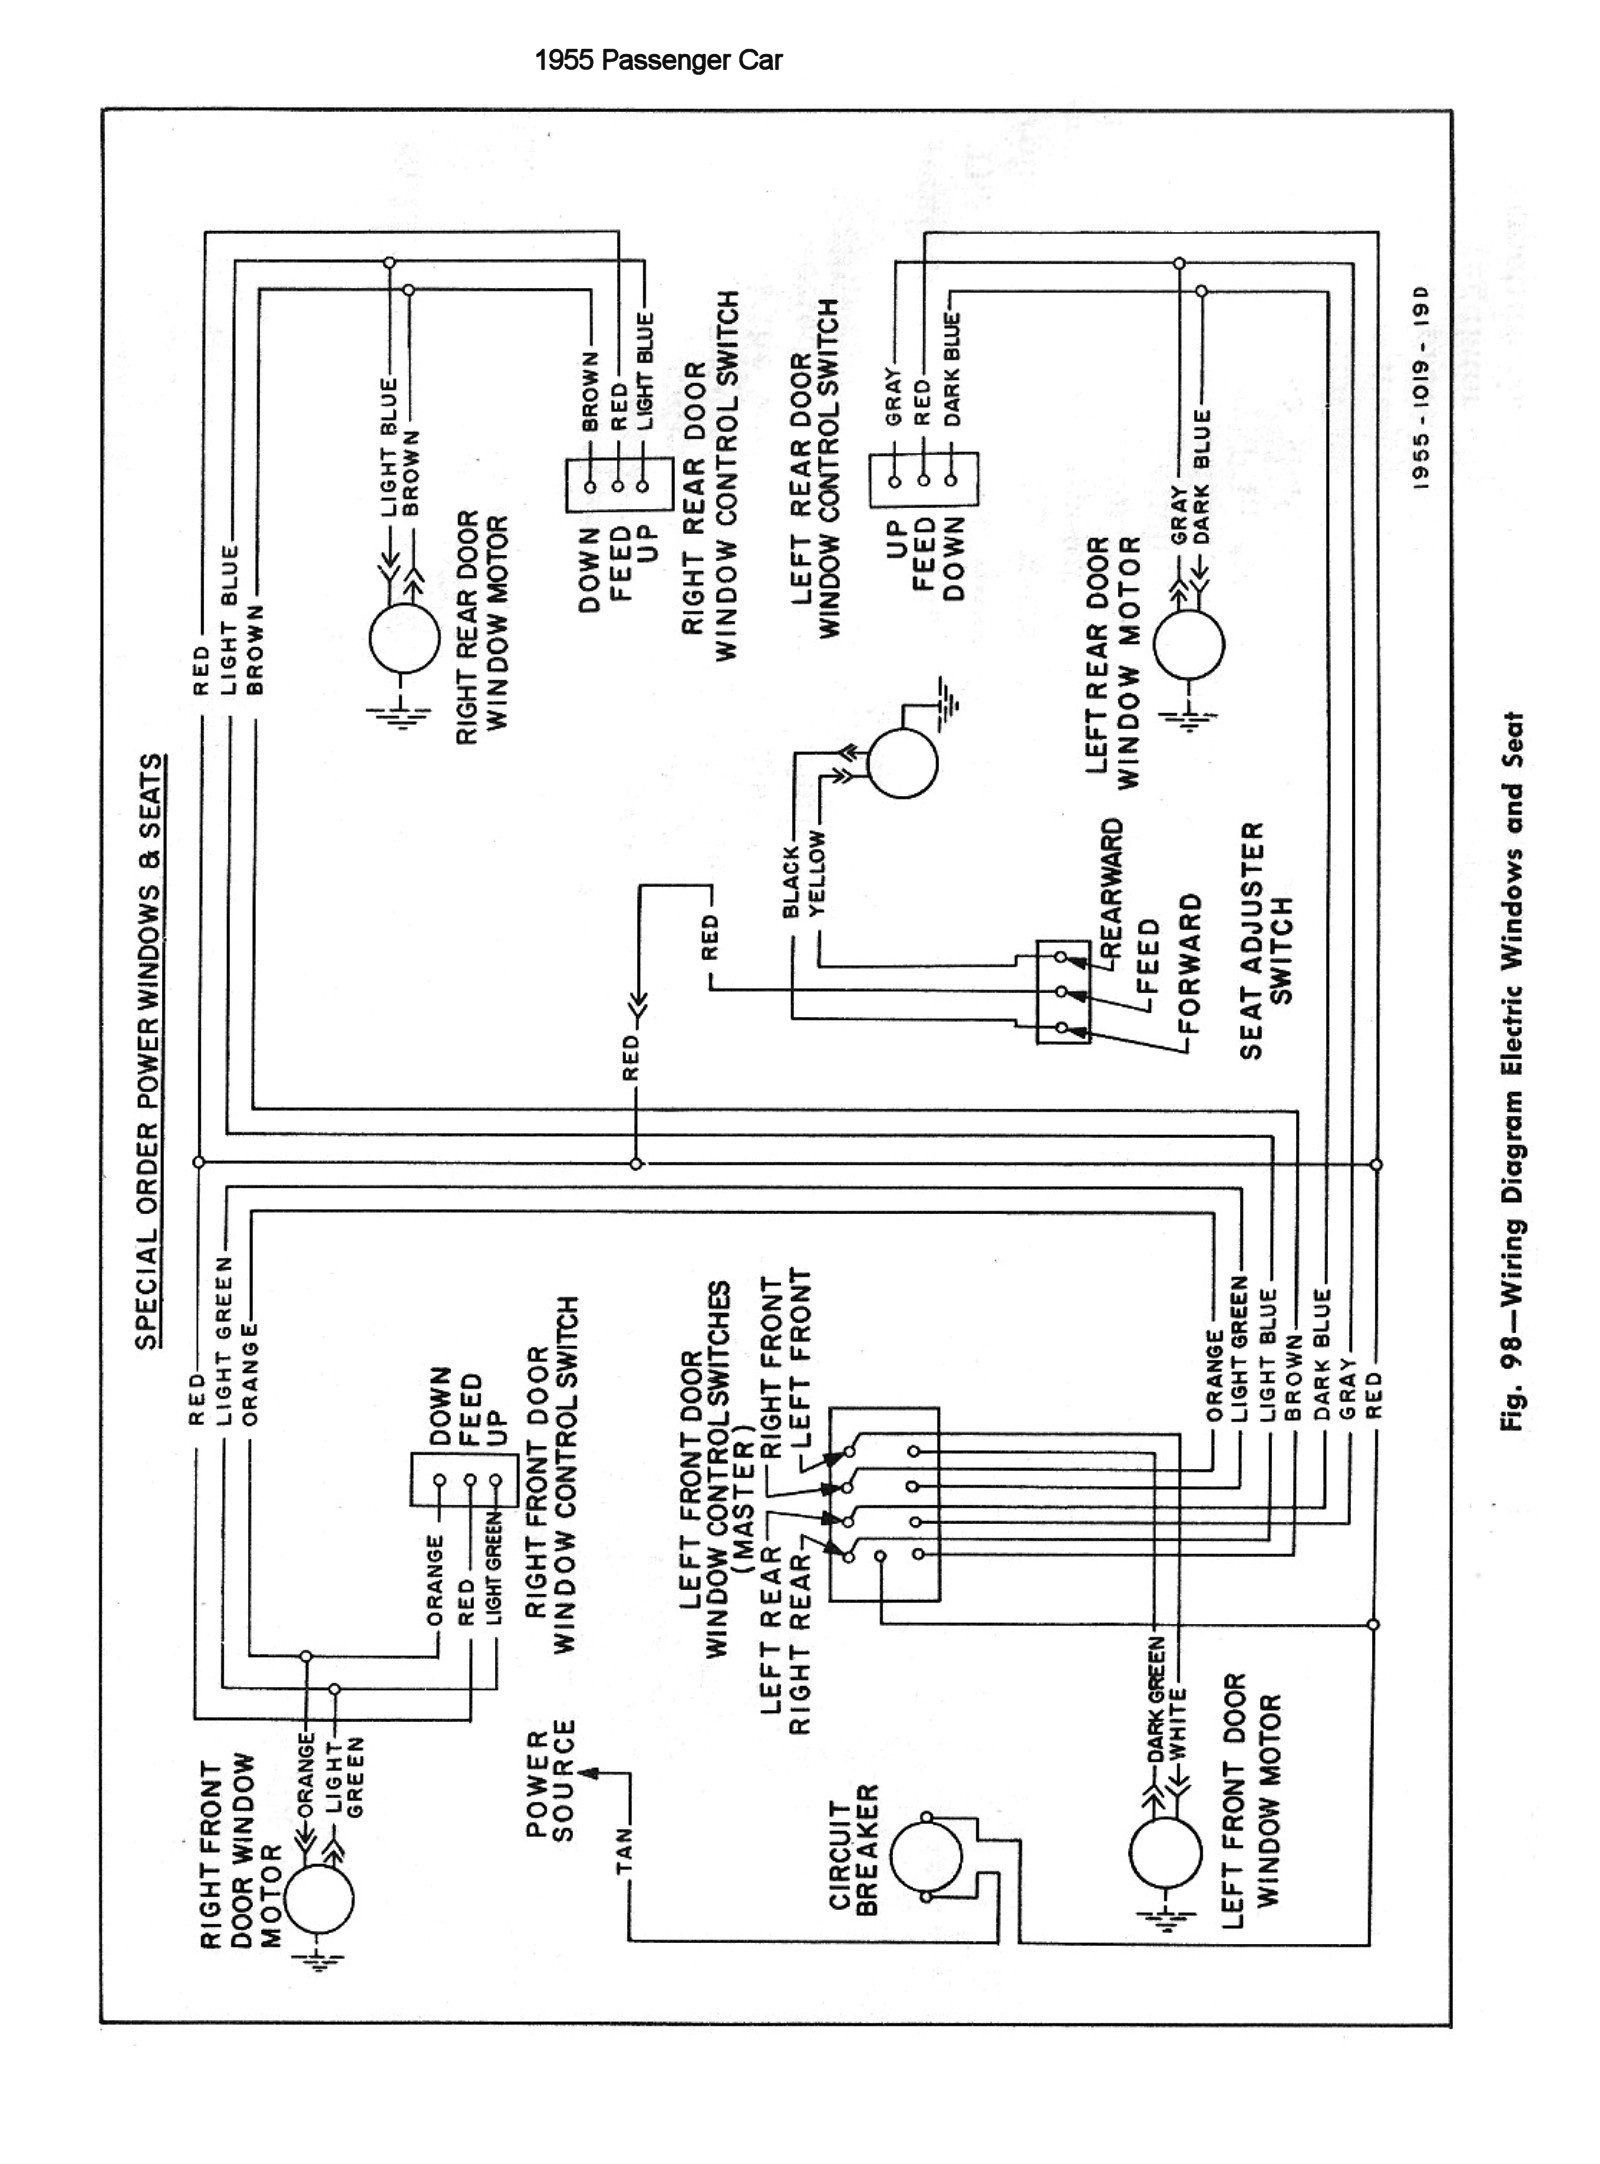 wiring diagram 1985 chevy c10